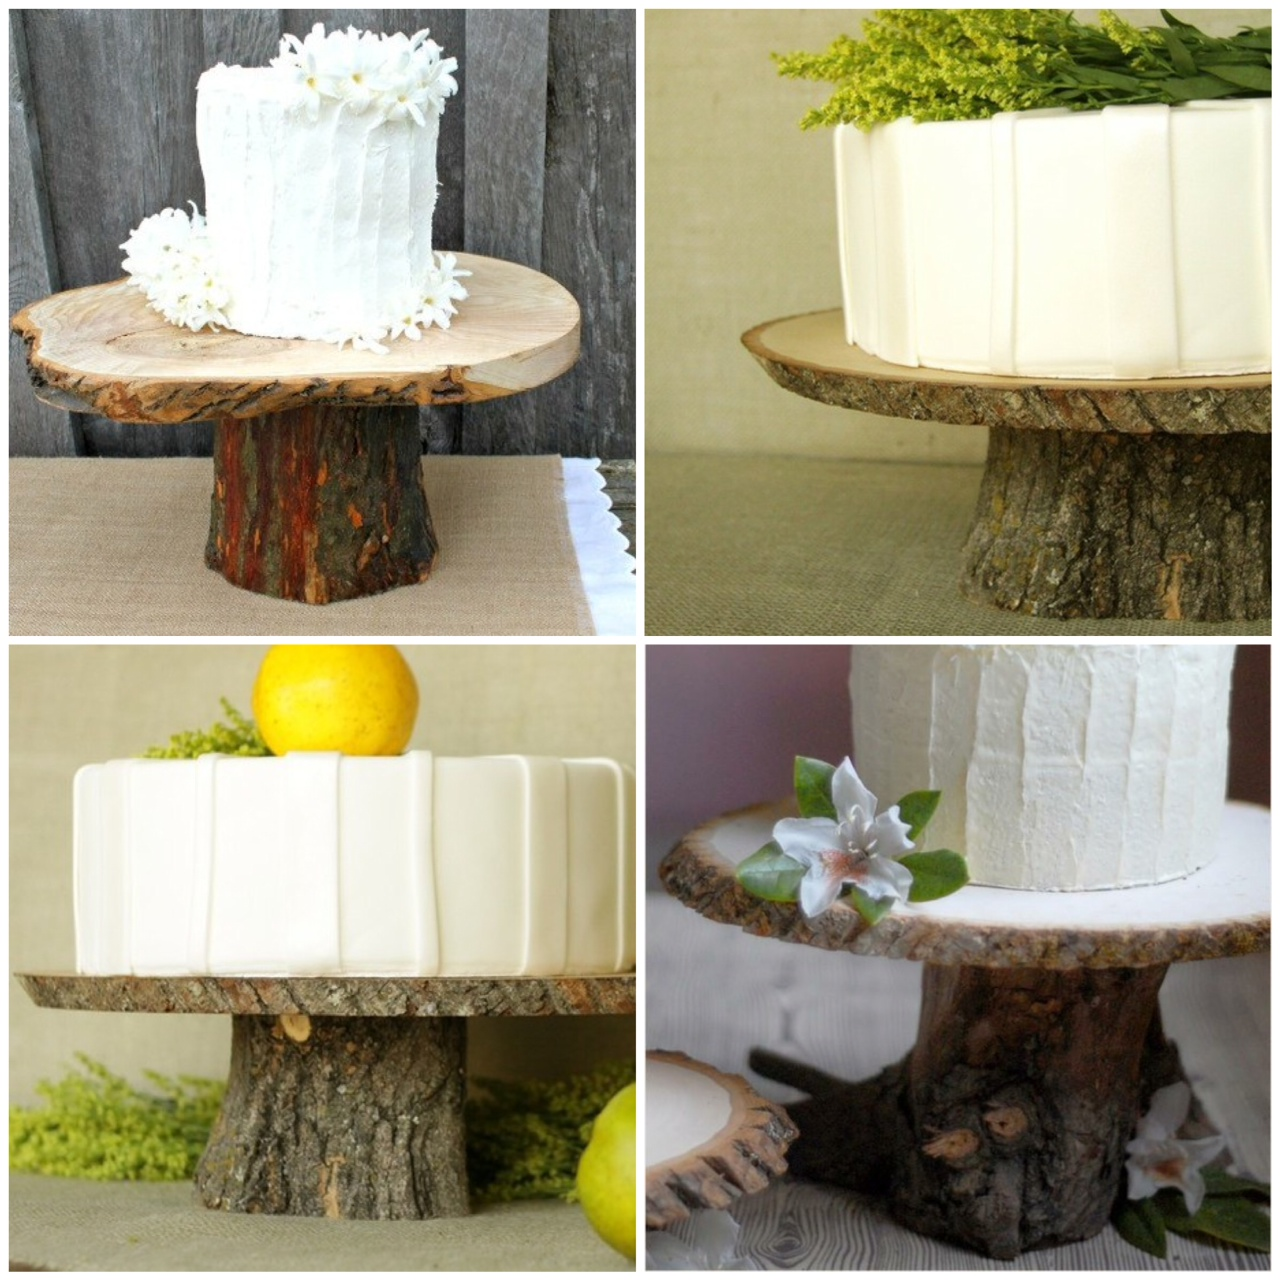 How to make a rustic wooden cake stand